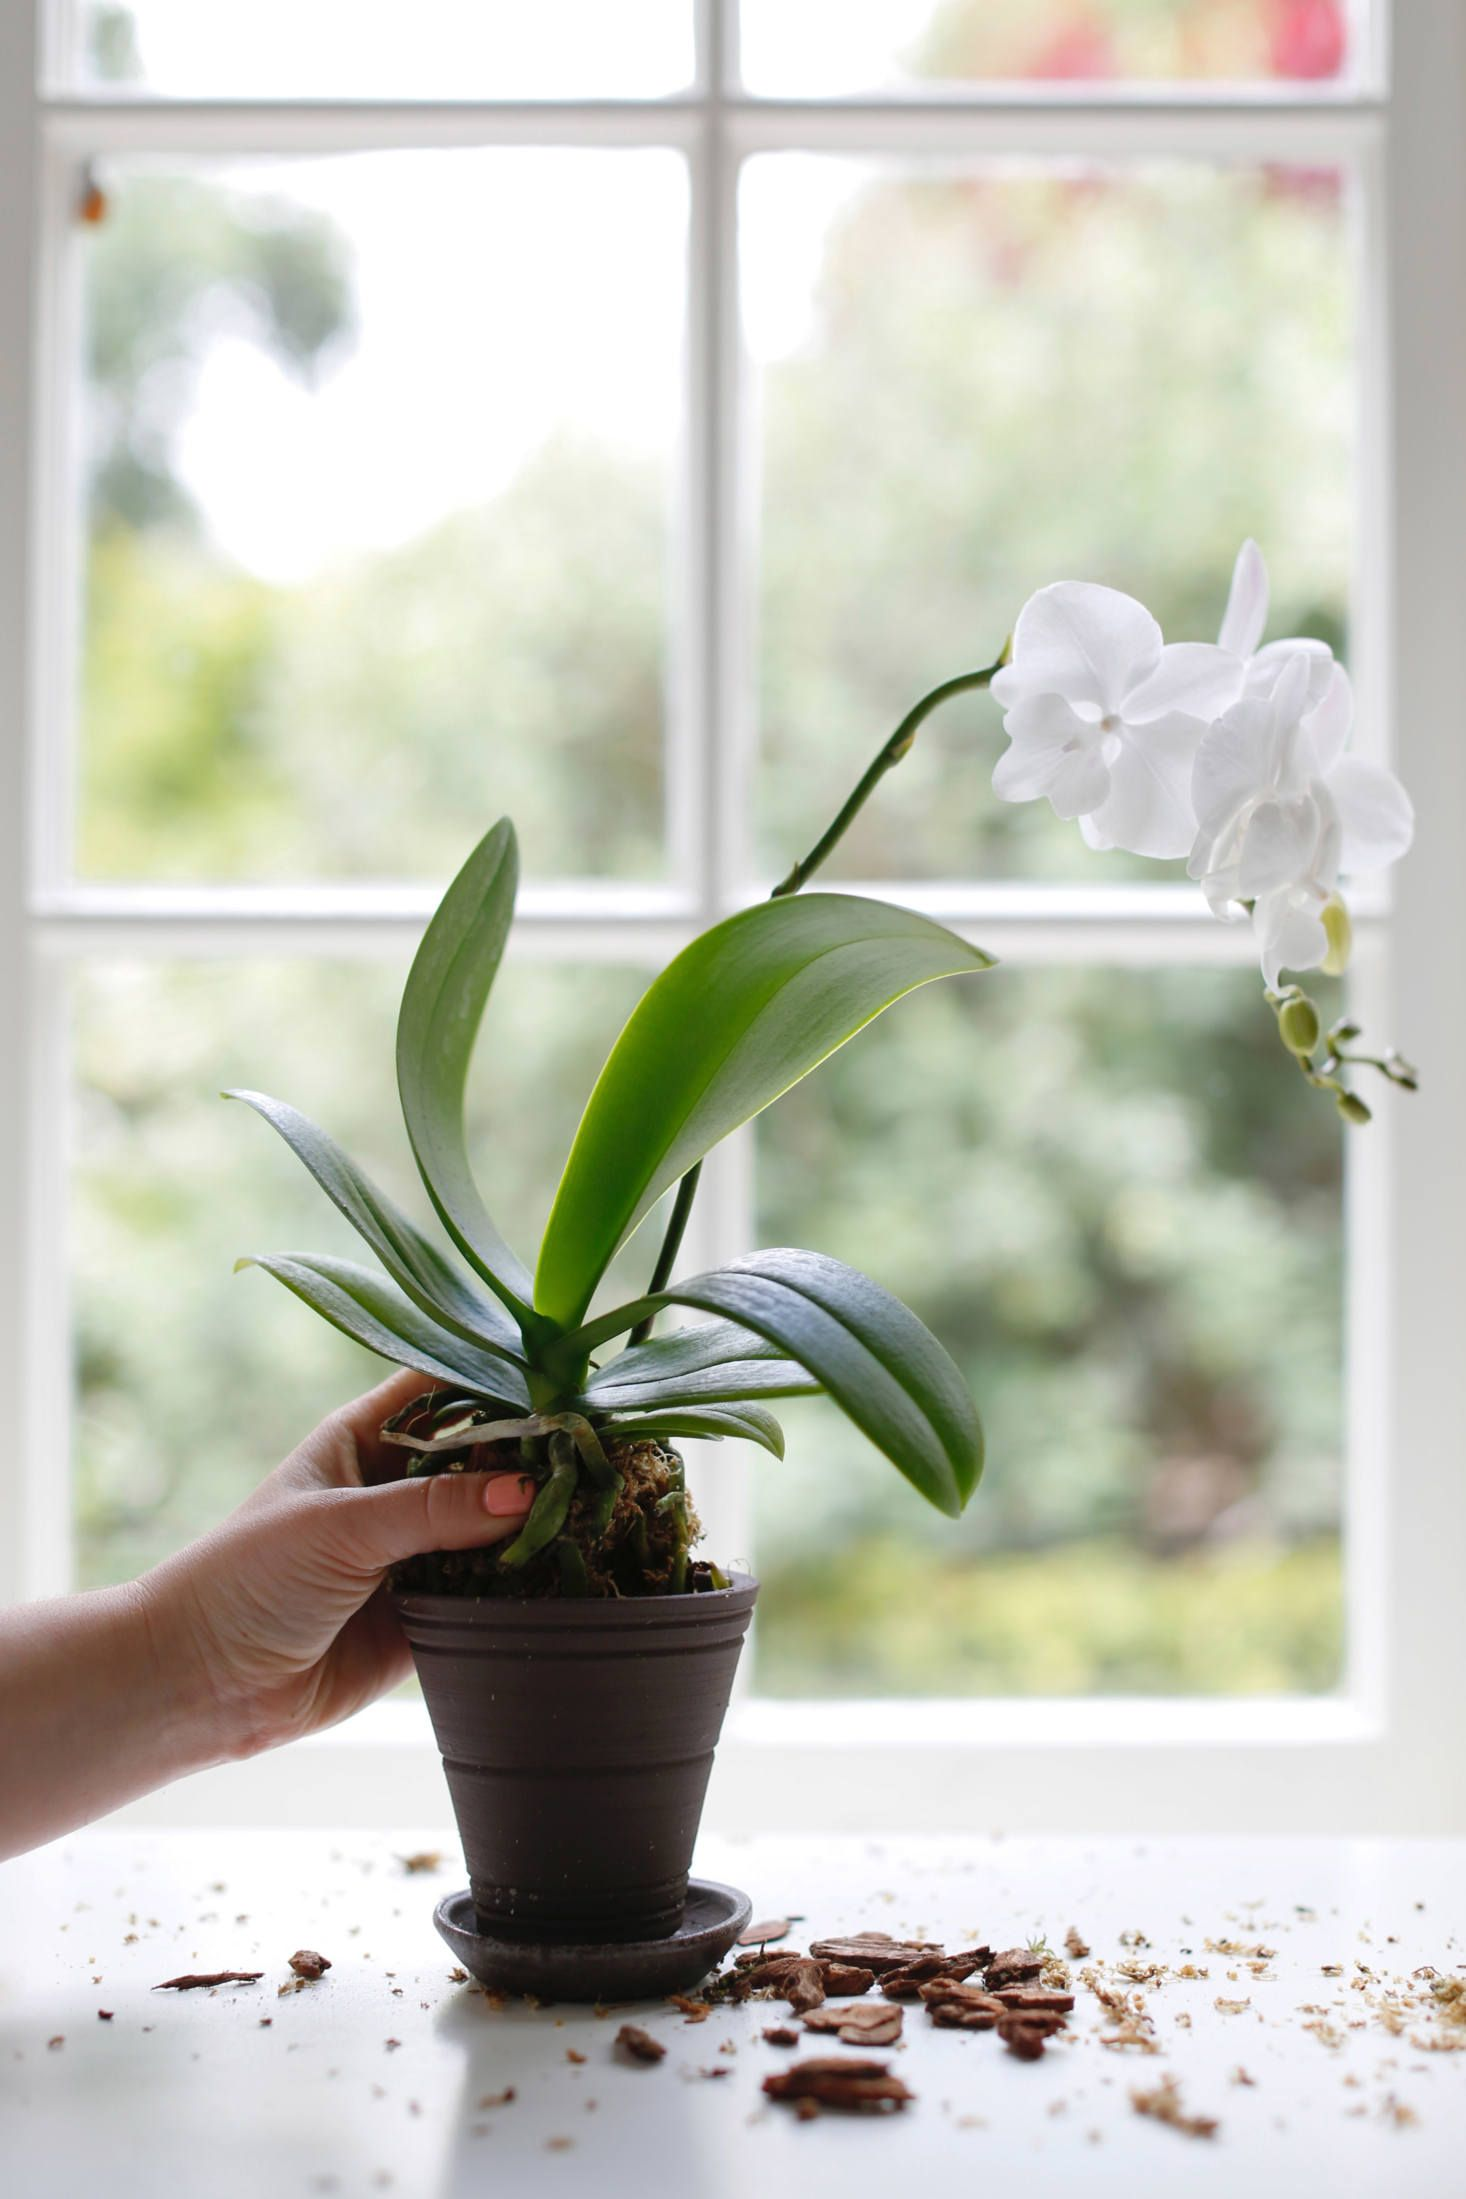 Be careful not to break any of the roots when removing the orchid